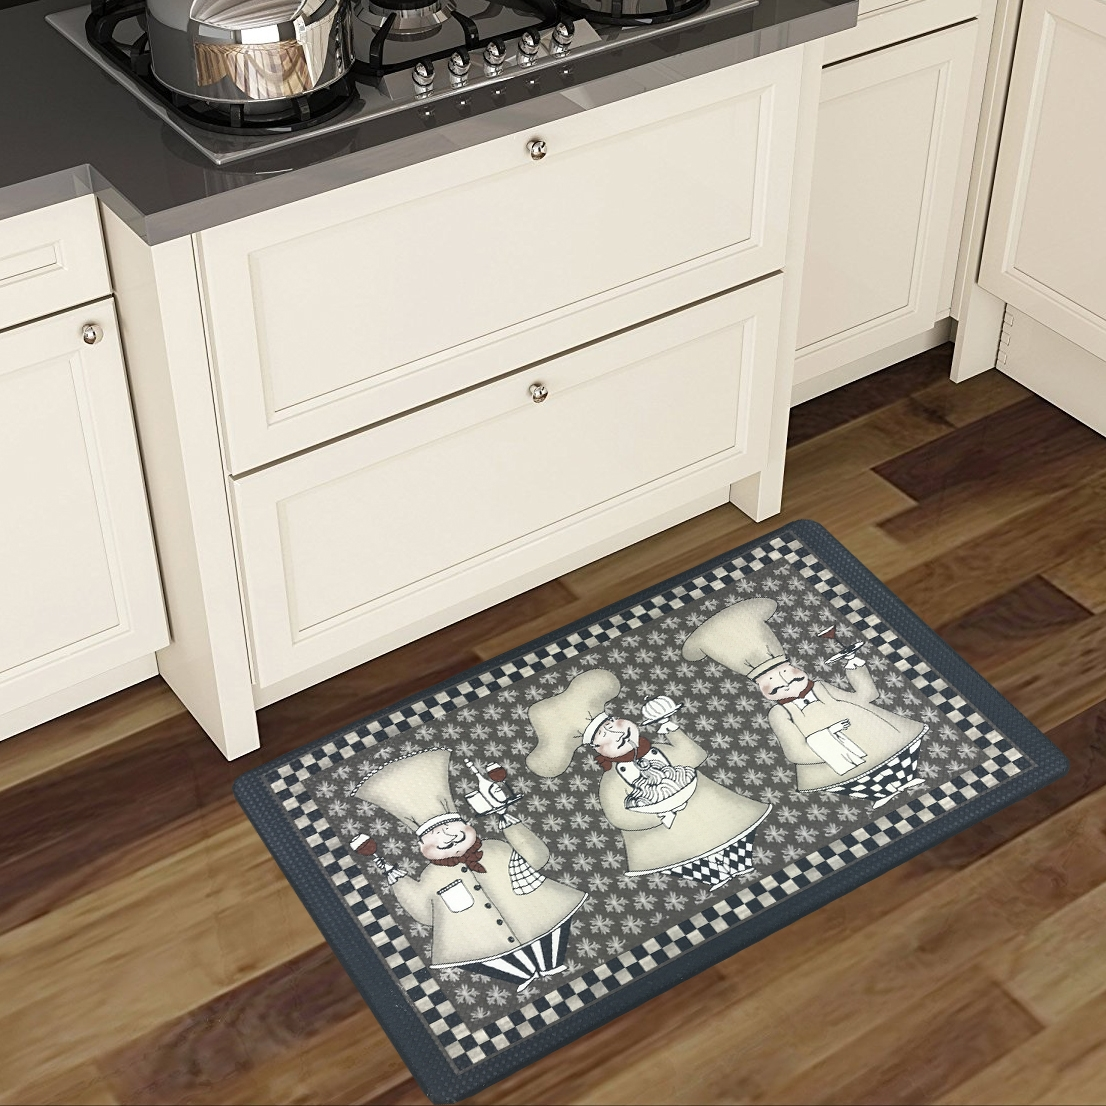 Strange Decorative Kitchen Mats Anti Fatigue Comfort Floor Mat Download Free Architecture Designs Scobabritishbridgeorg